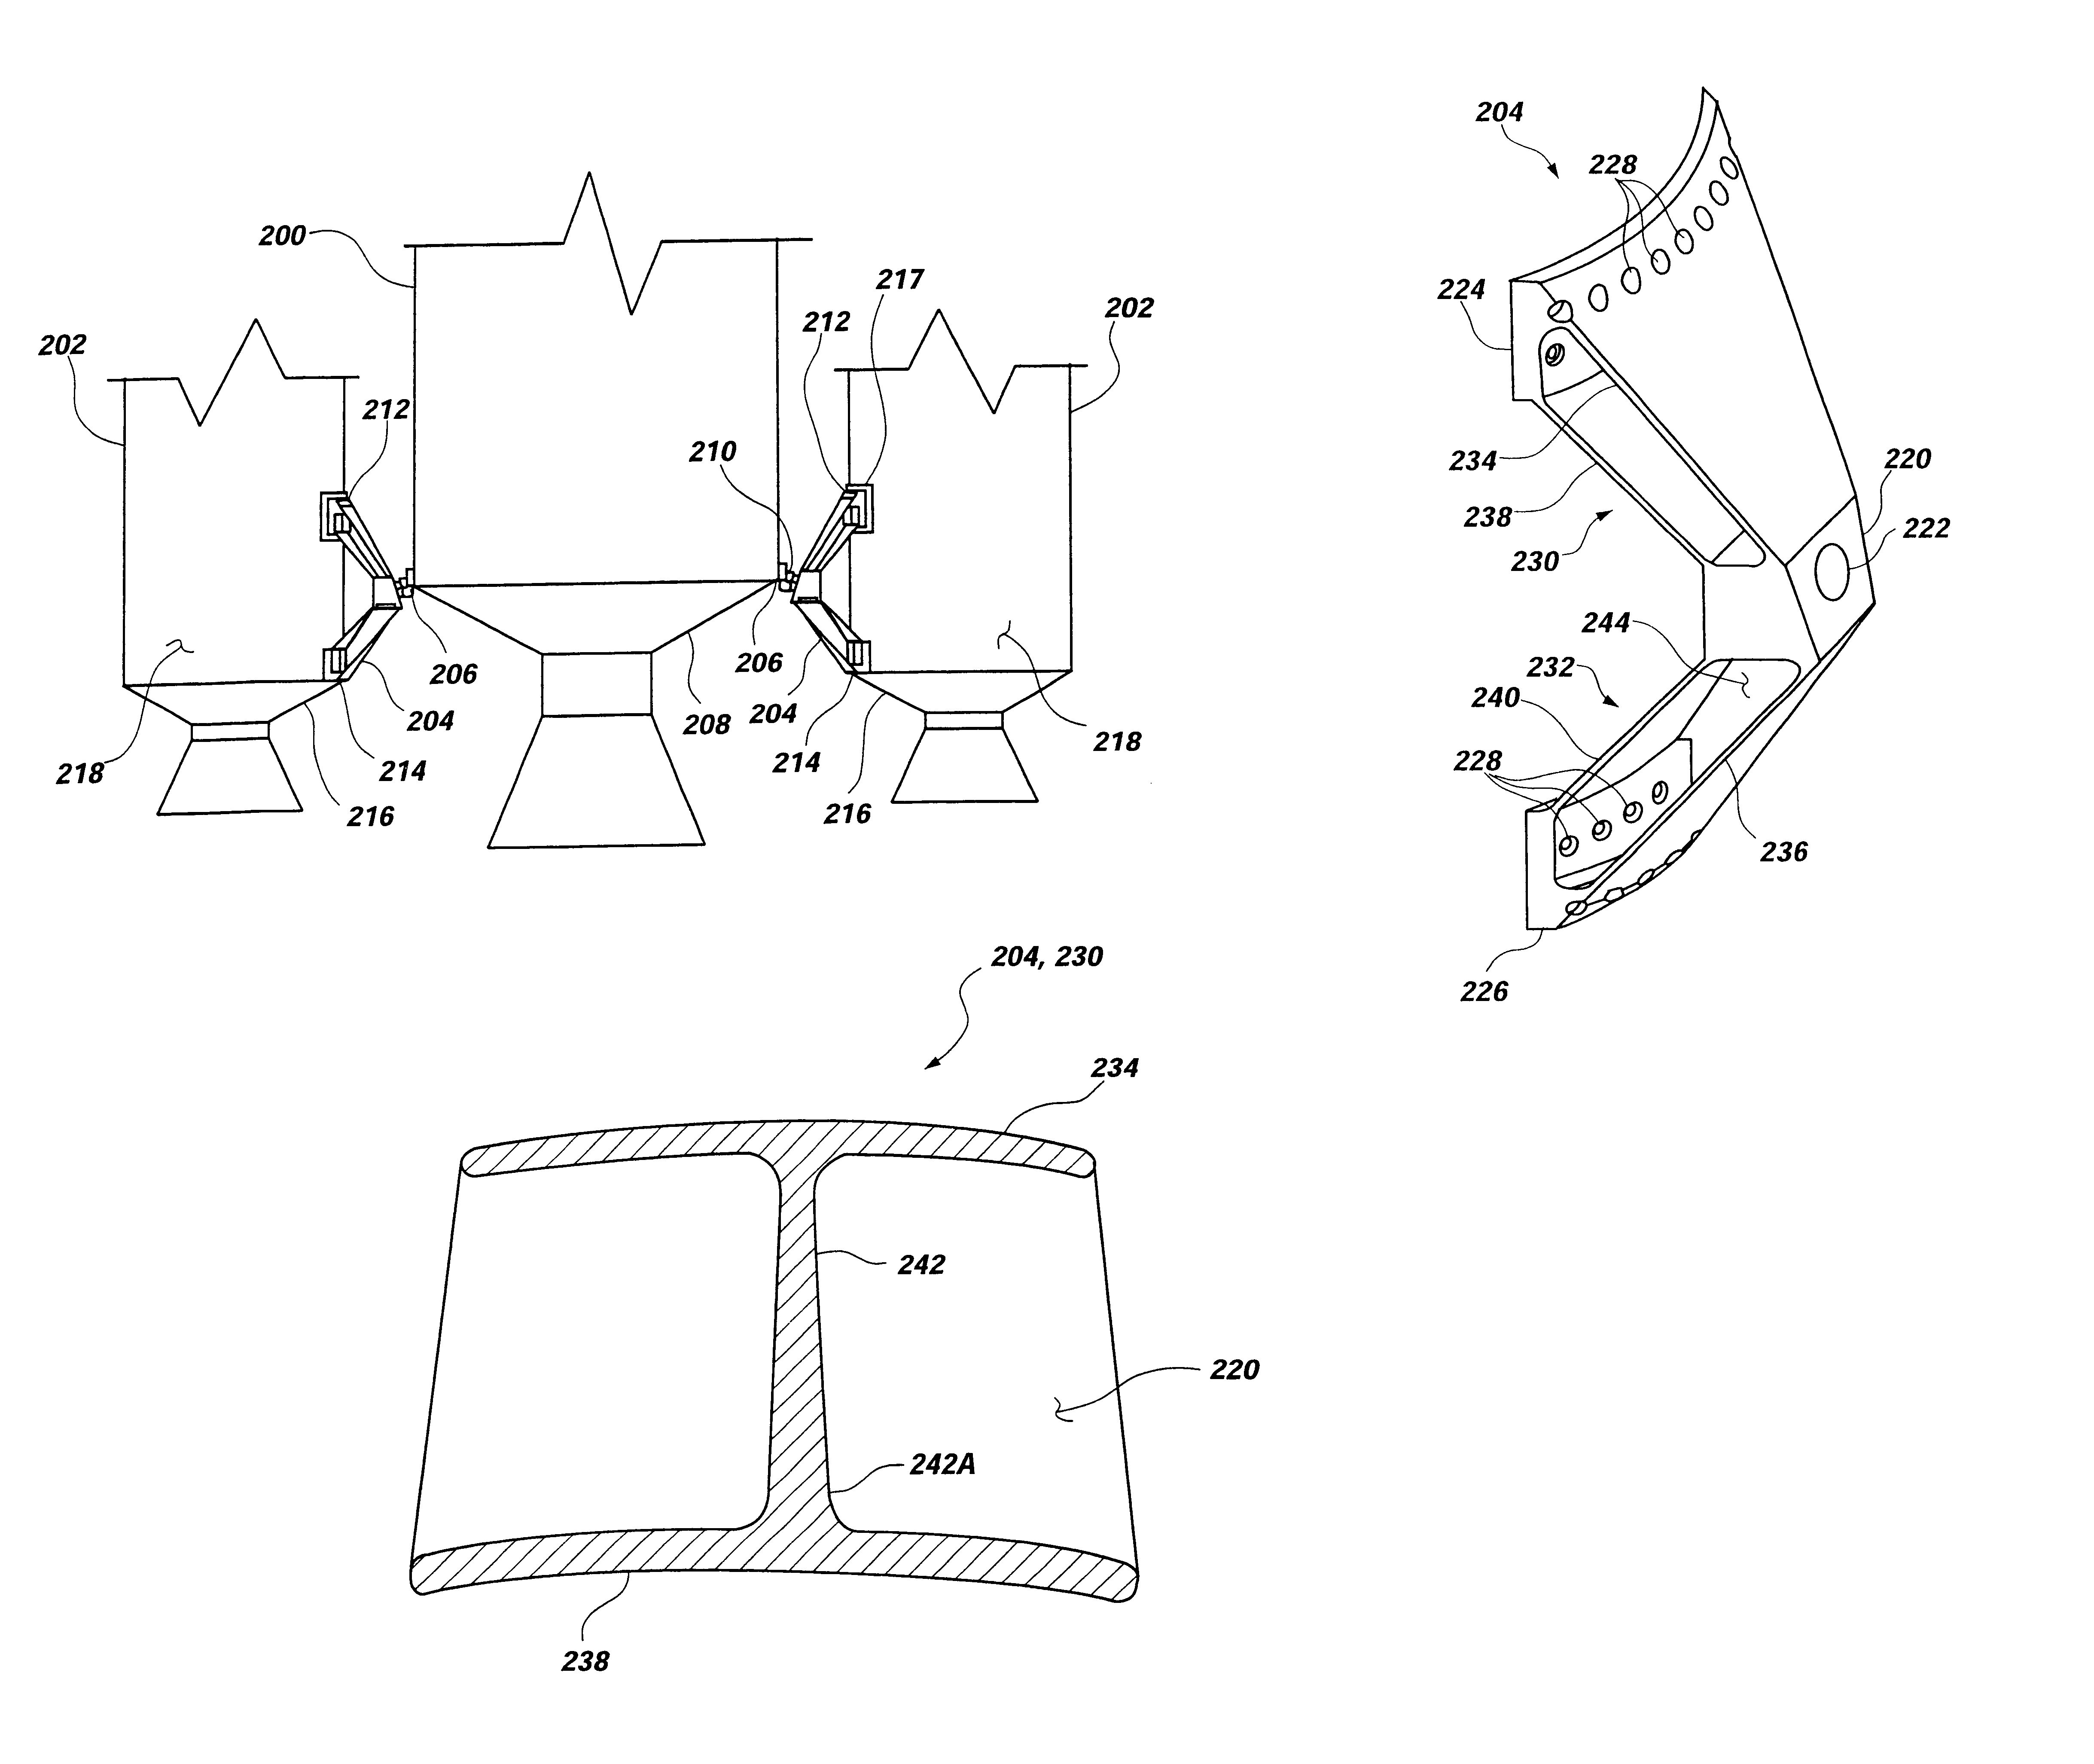 apparatus for load transfer between aerospace vehicle components, aerospace  vehicles including same,